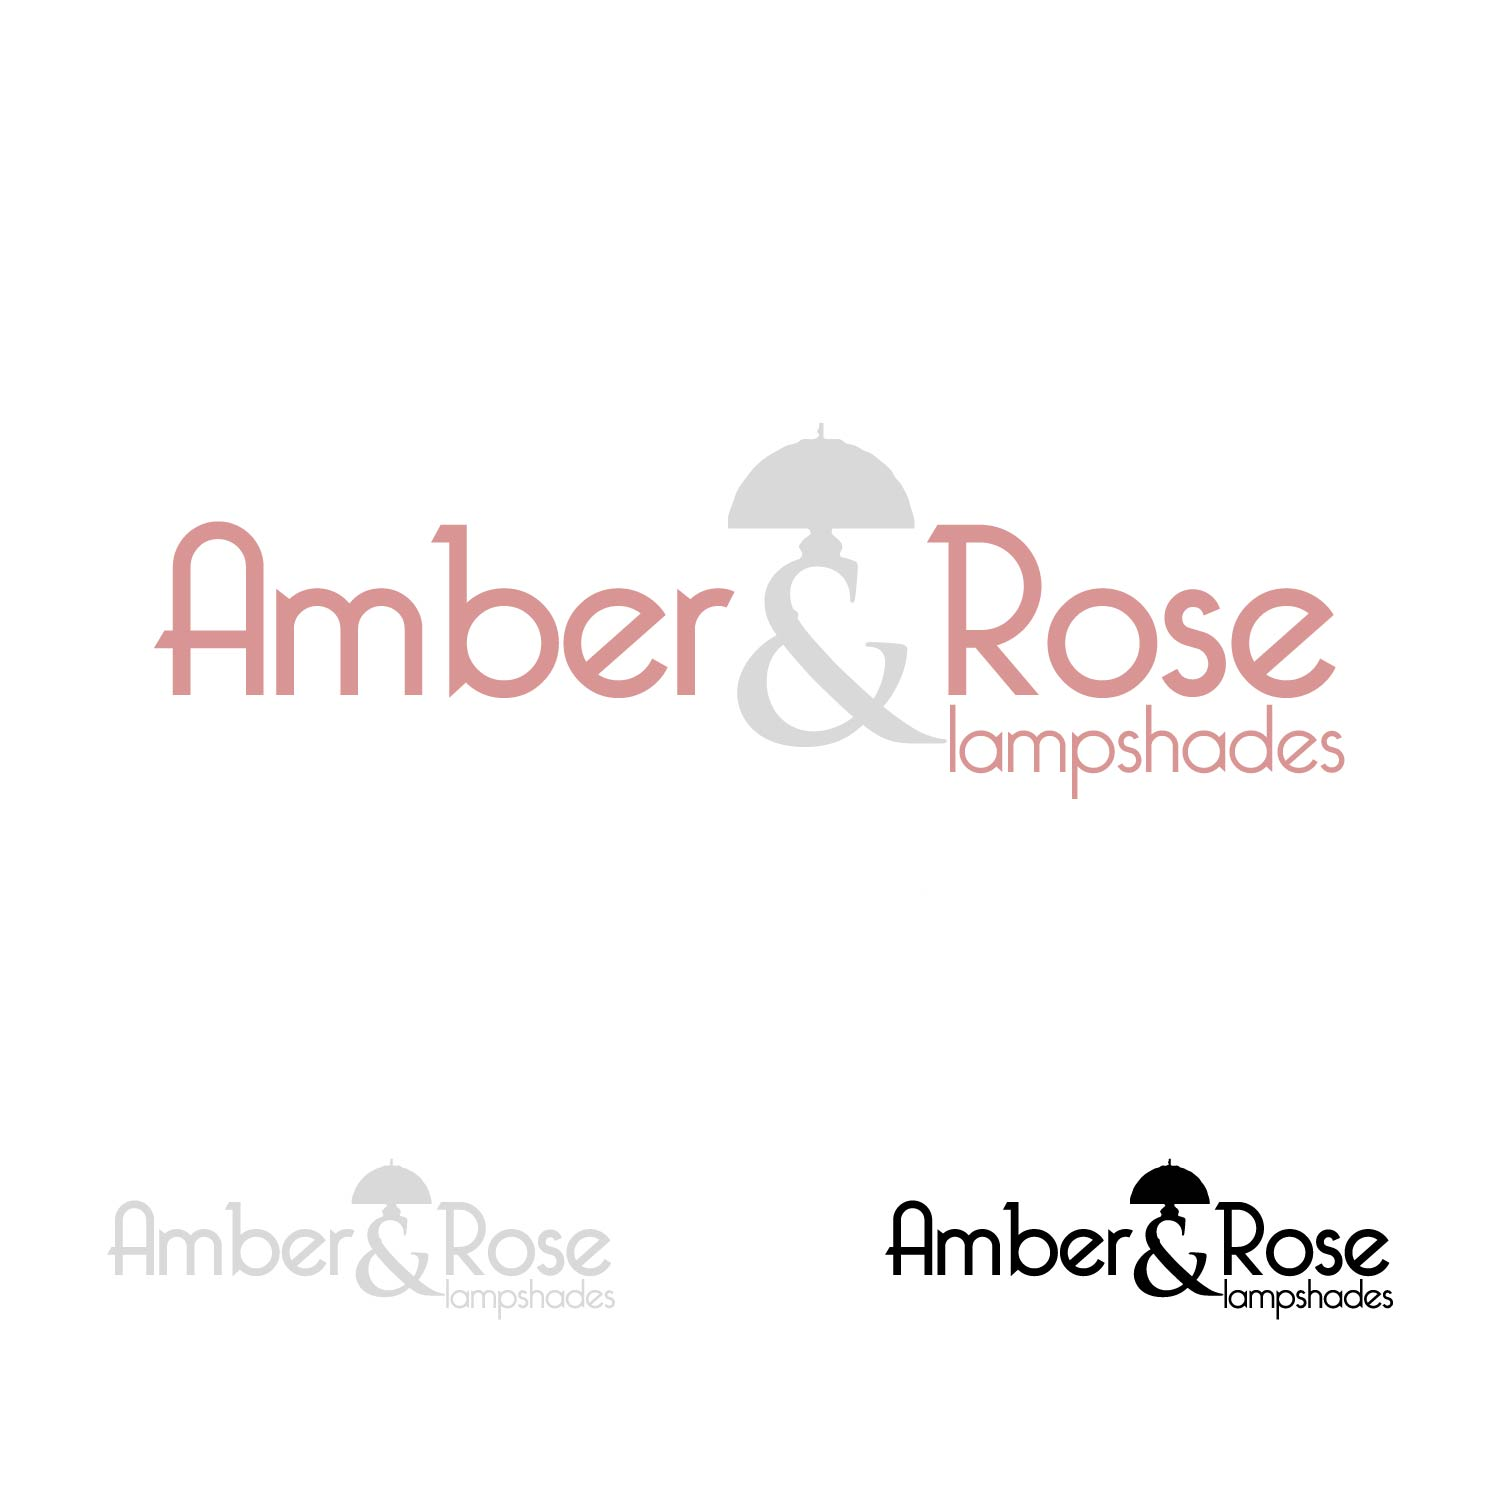 Logo Design by lagalag - Entry No. 28 in the Logo Design Contest Creative Logo Design for Amber & Rose.